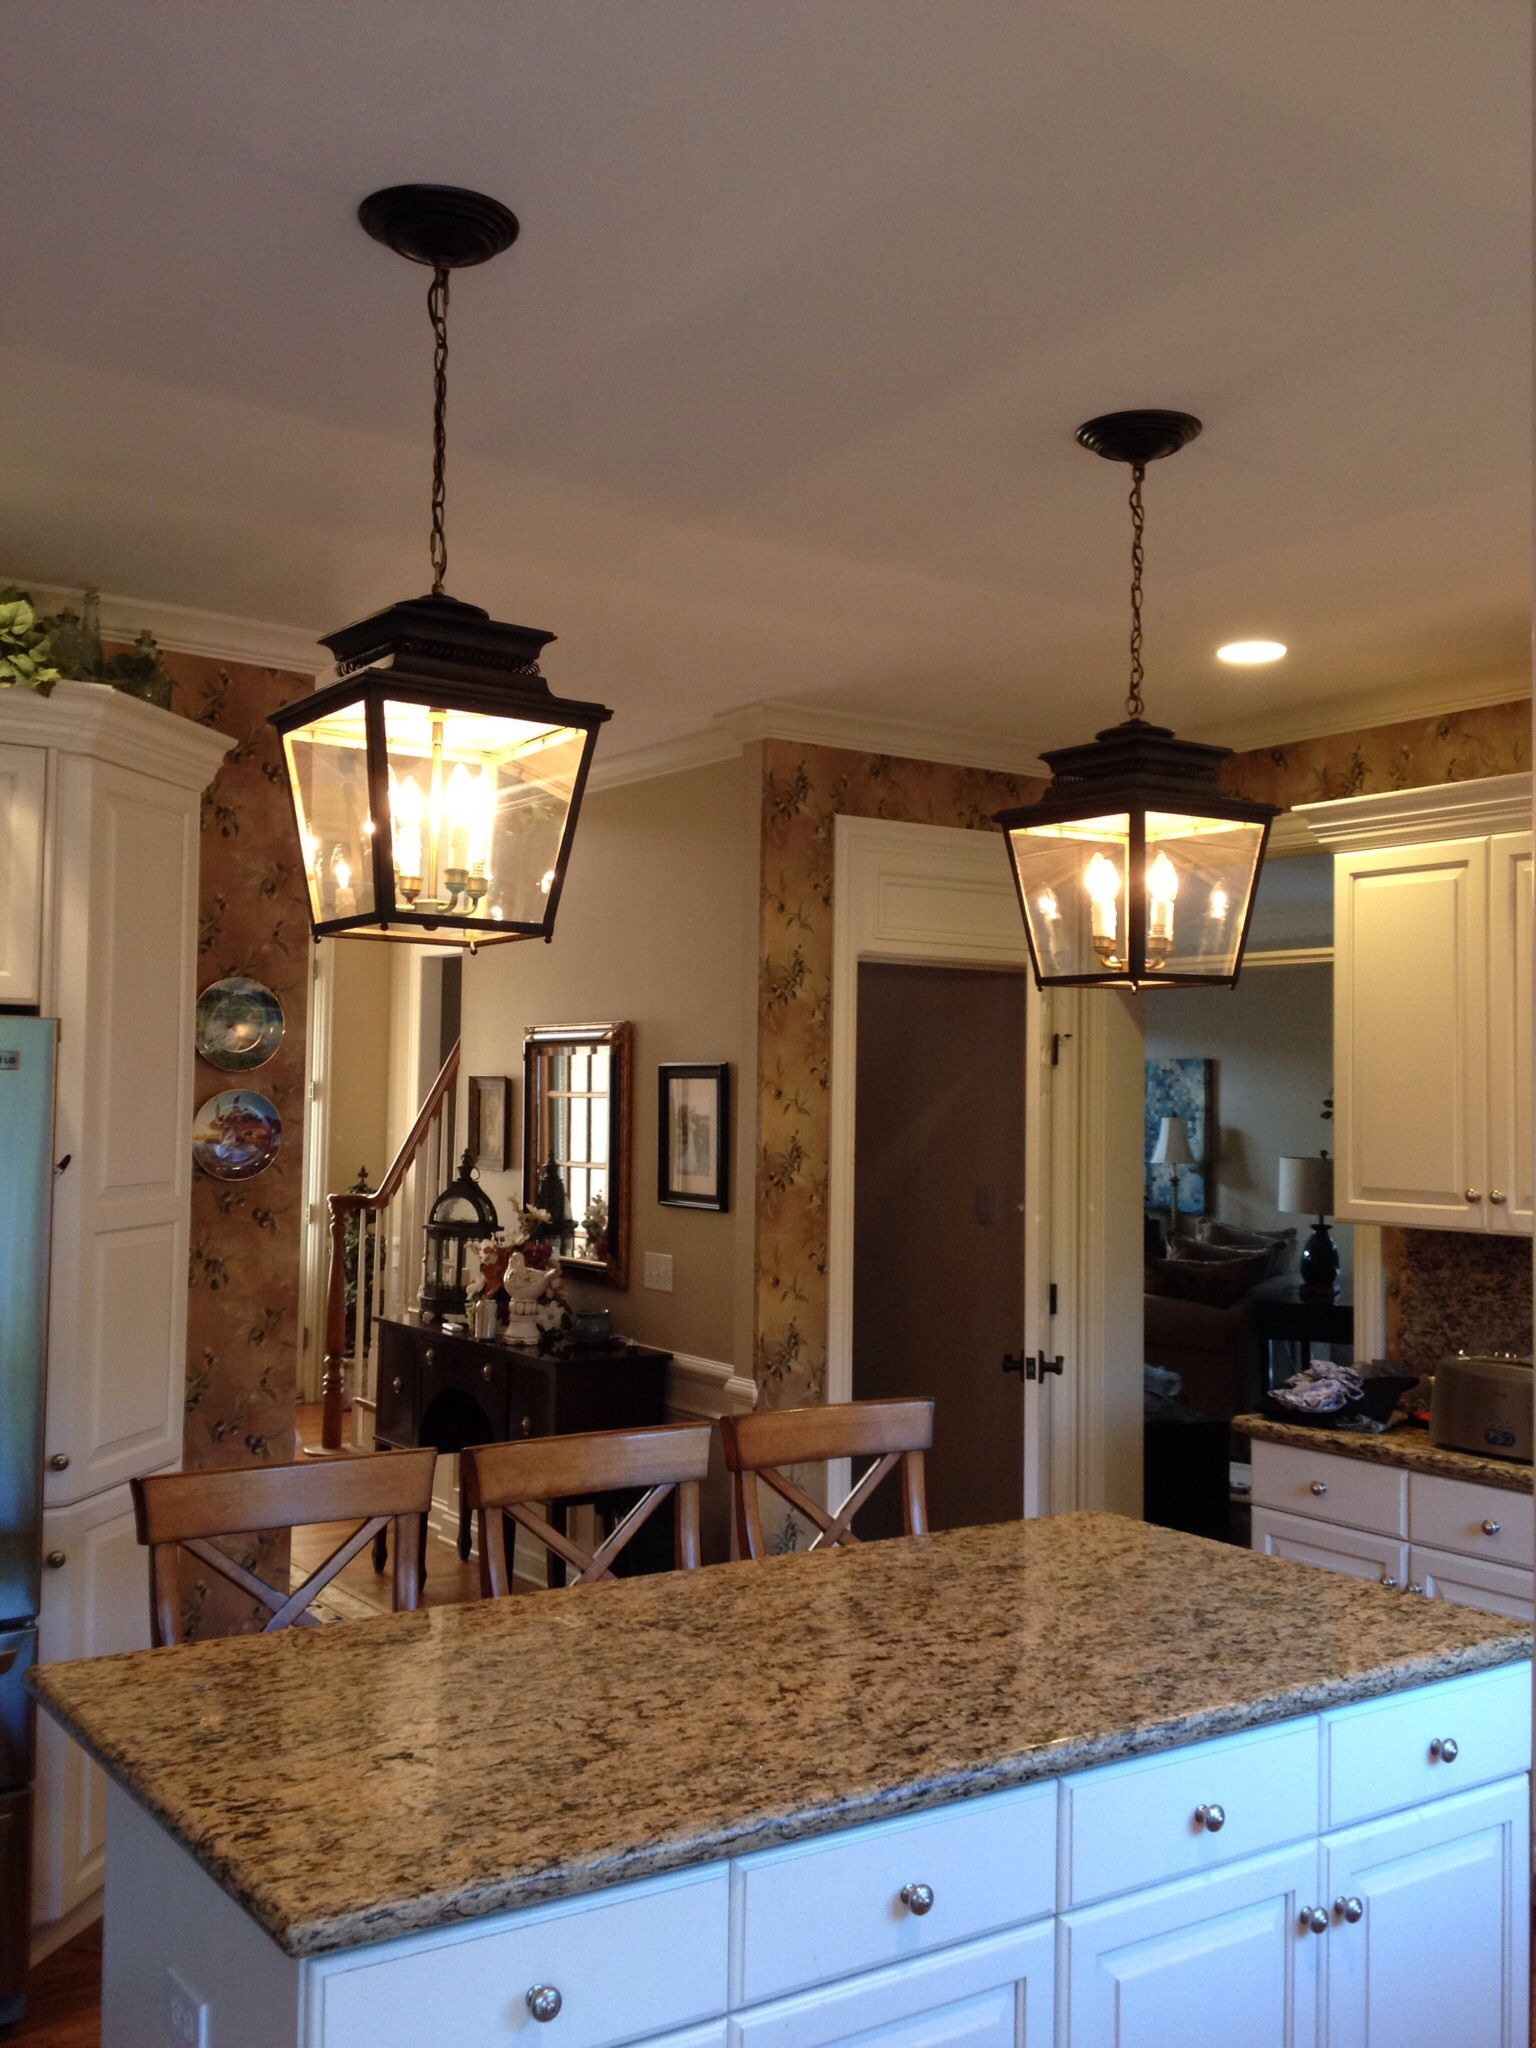 Ballard Designs Kitchen Island Lantern Lights - Ballard Designs Piedmont Lanterns Over My